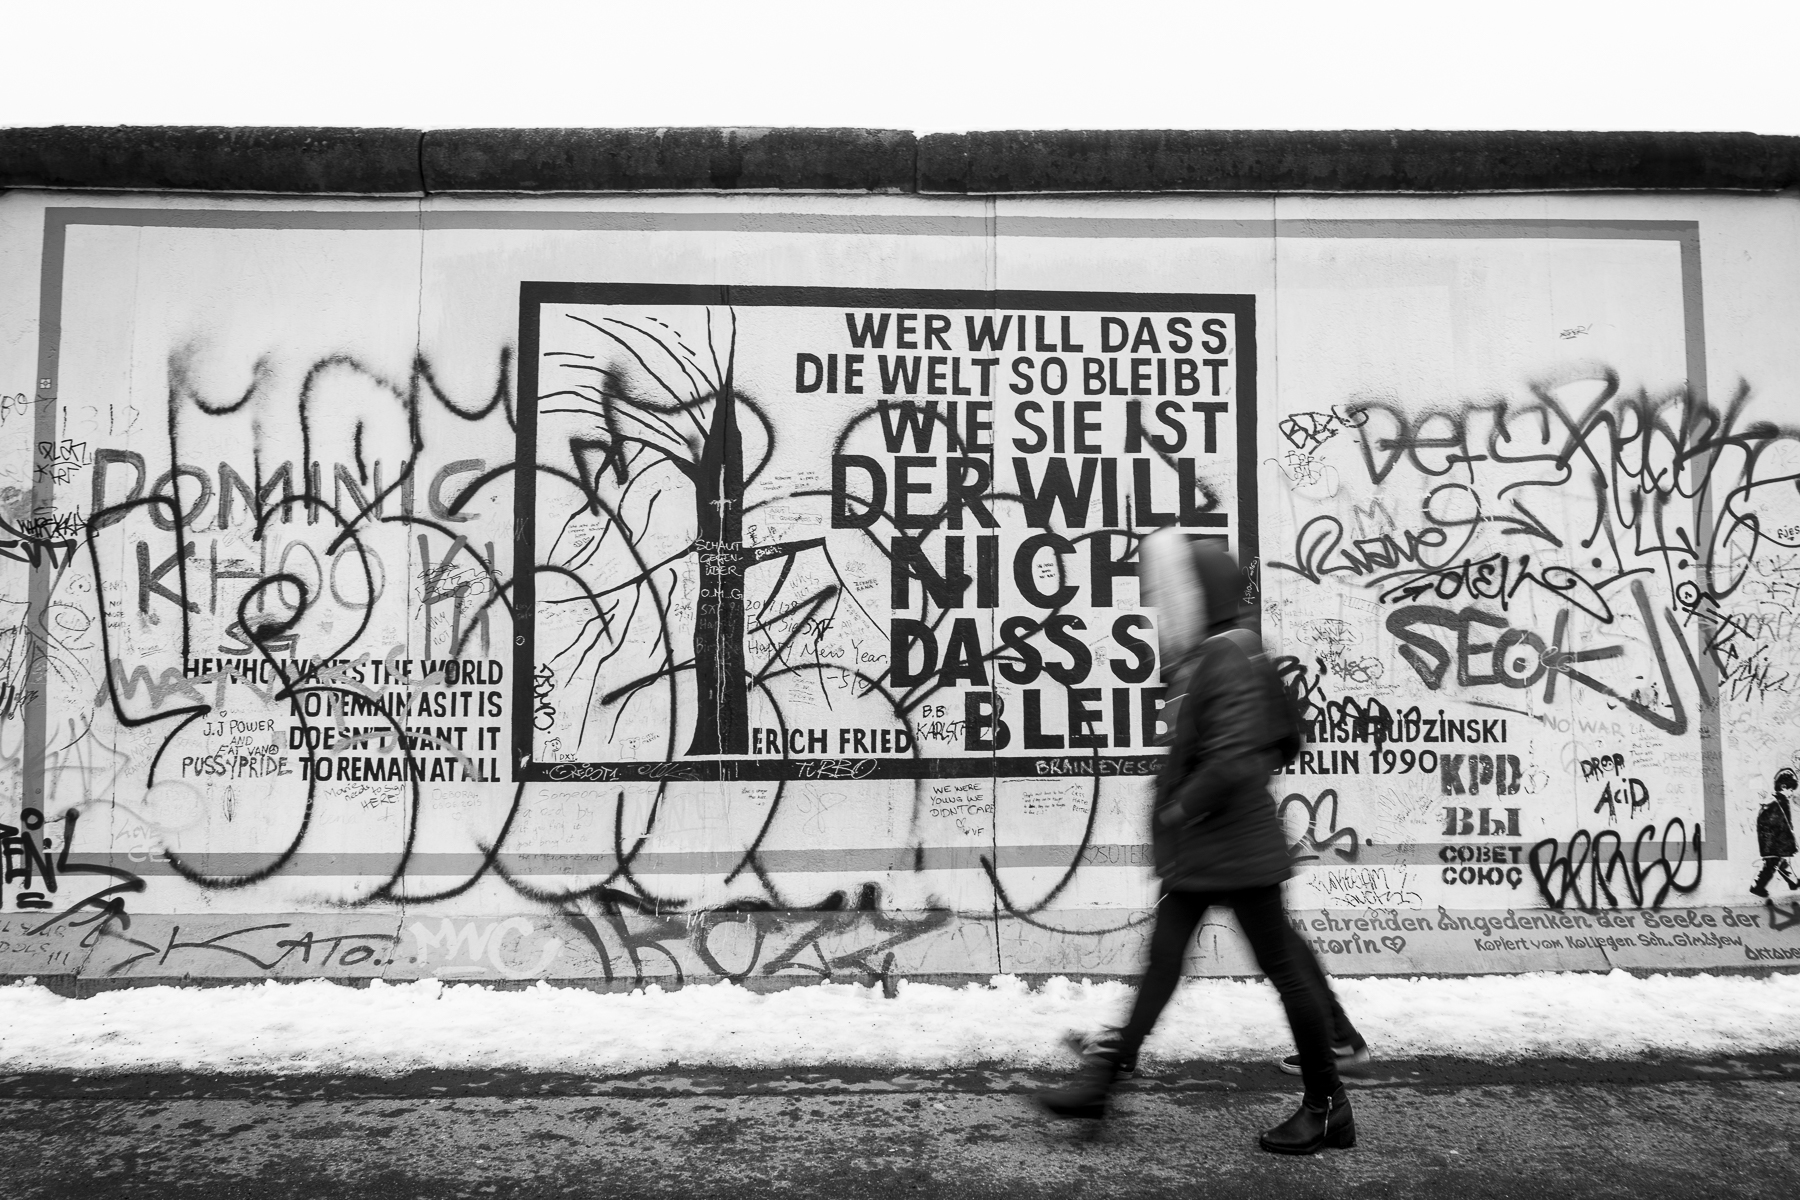 East Side Gallery Photography : Alexander J.E. Bradley - Nikon D500 - 14-70mm f/2.8 @ 15mm - f8 - 1/20 - ISO 100